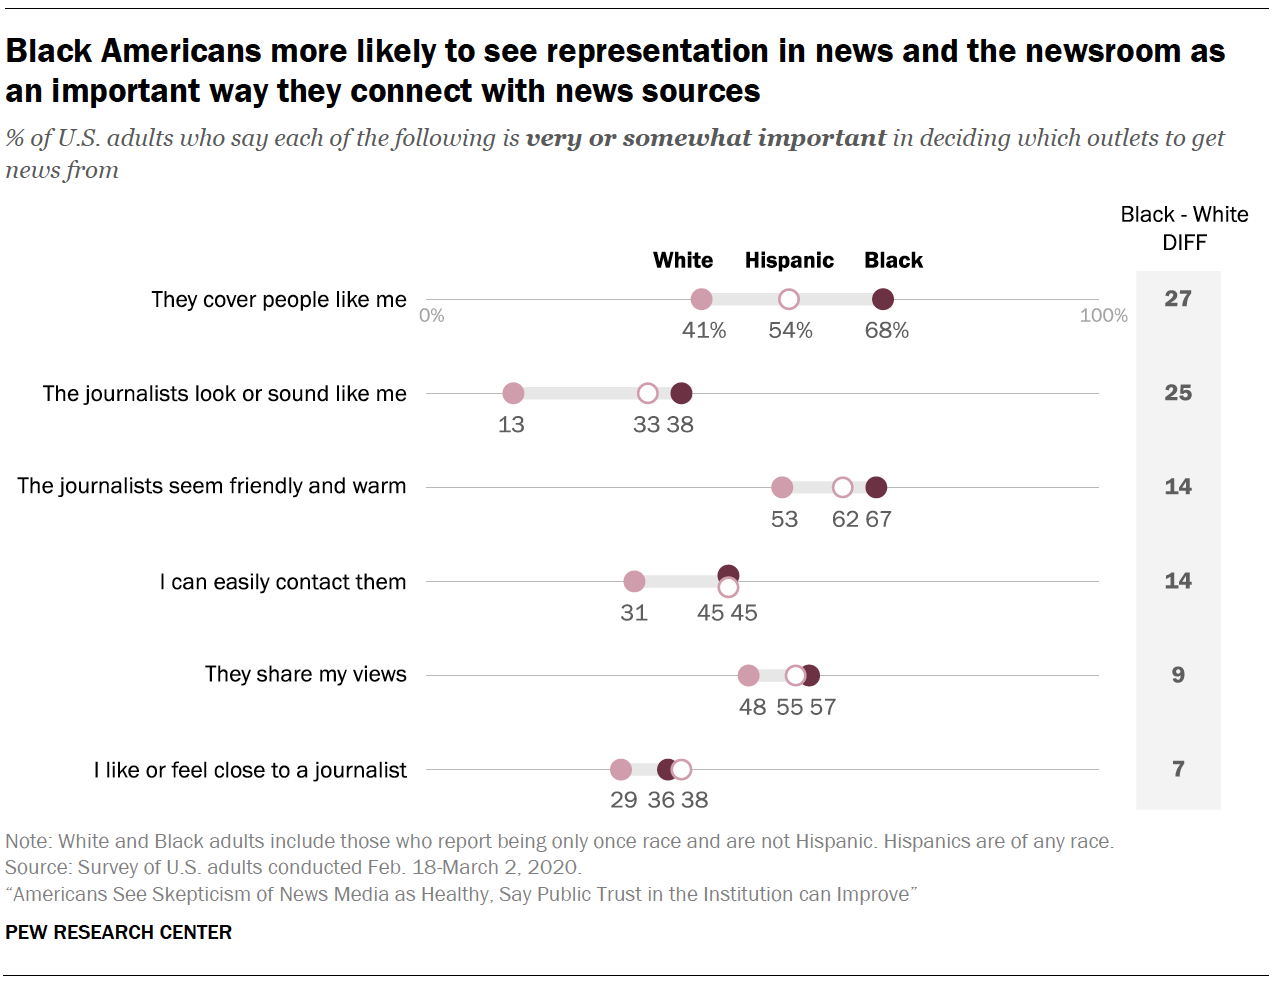 Black Americans more likely to see representation in news and the newsroom as an important way they connect with news sources